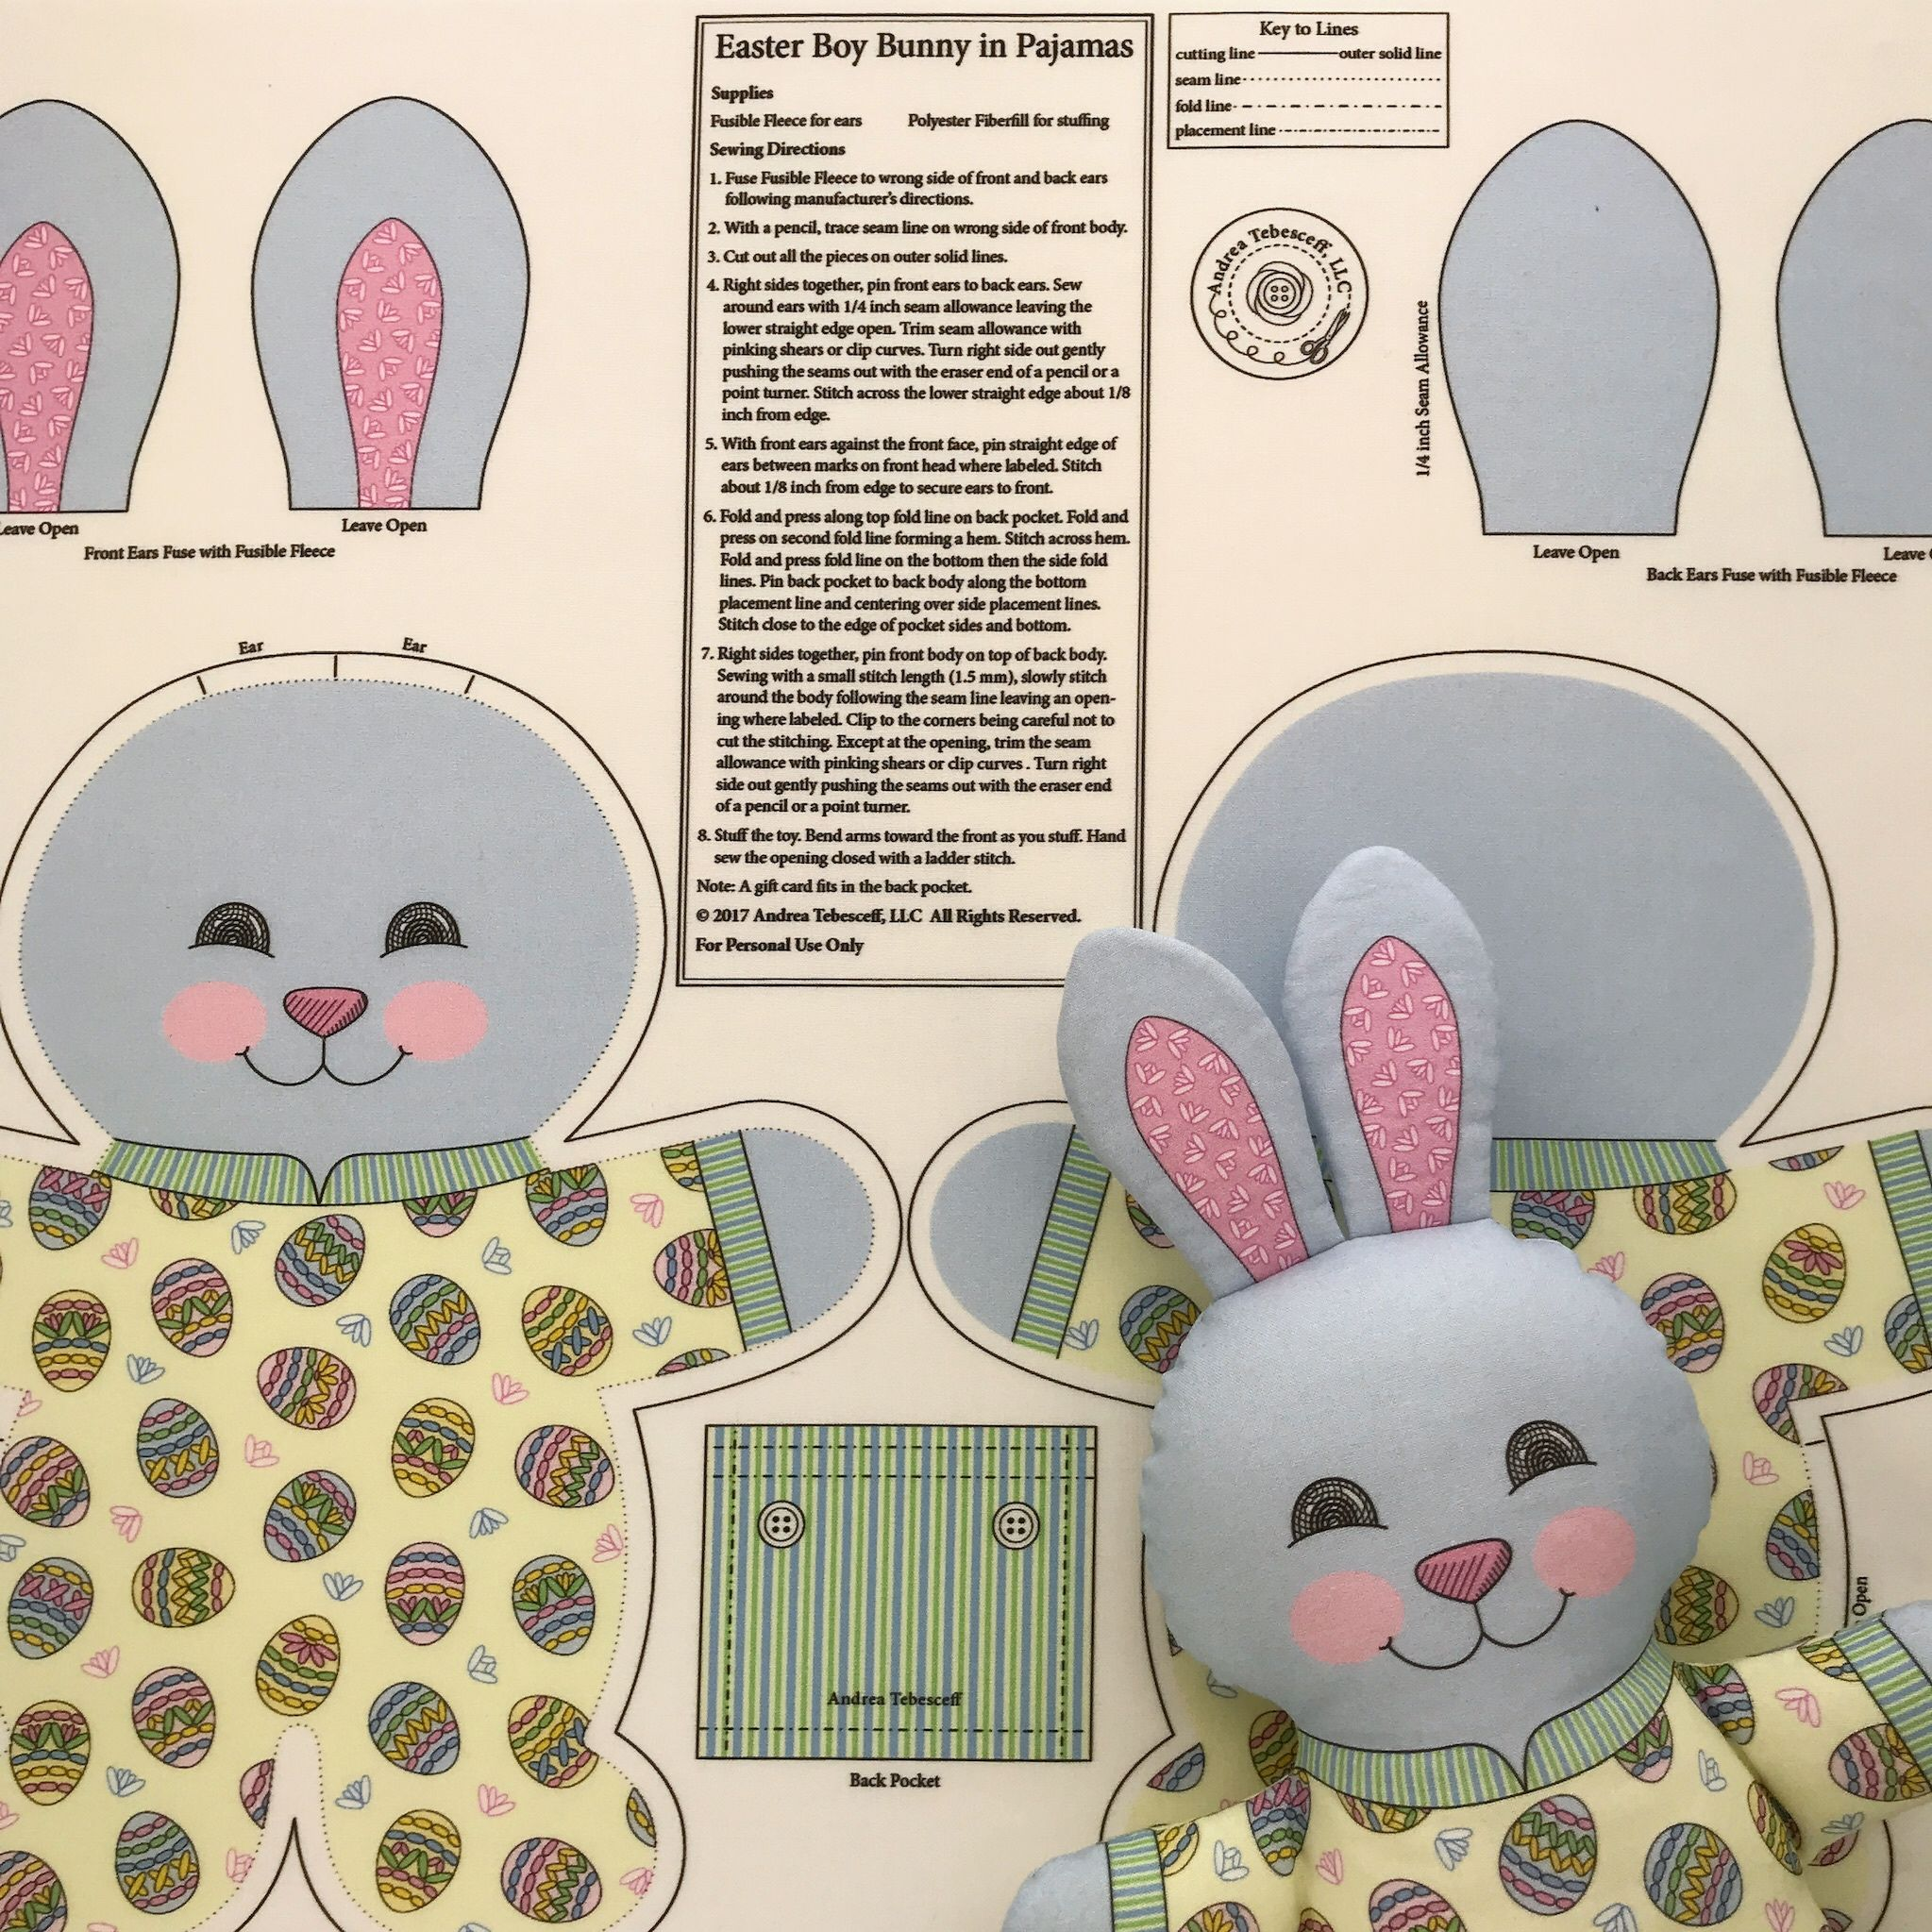 """77a9653729 It is time to sew the Bunnies! """"Easter Boy Bunny in Pajamas"""" is a ..."""